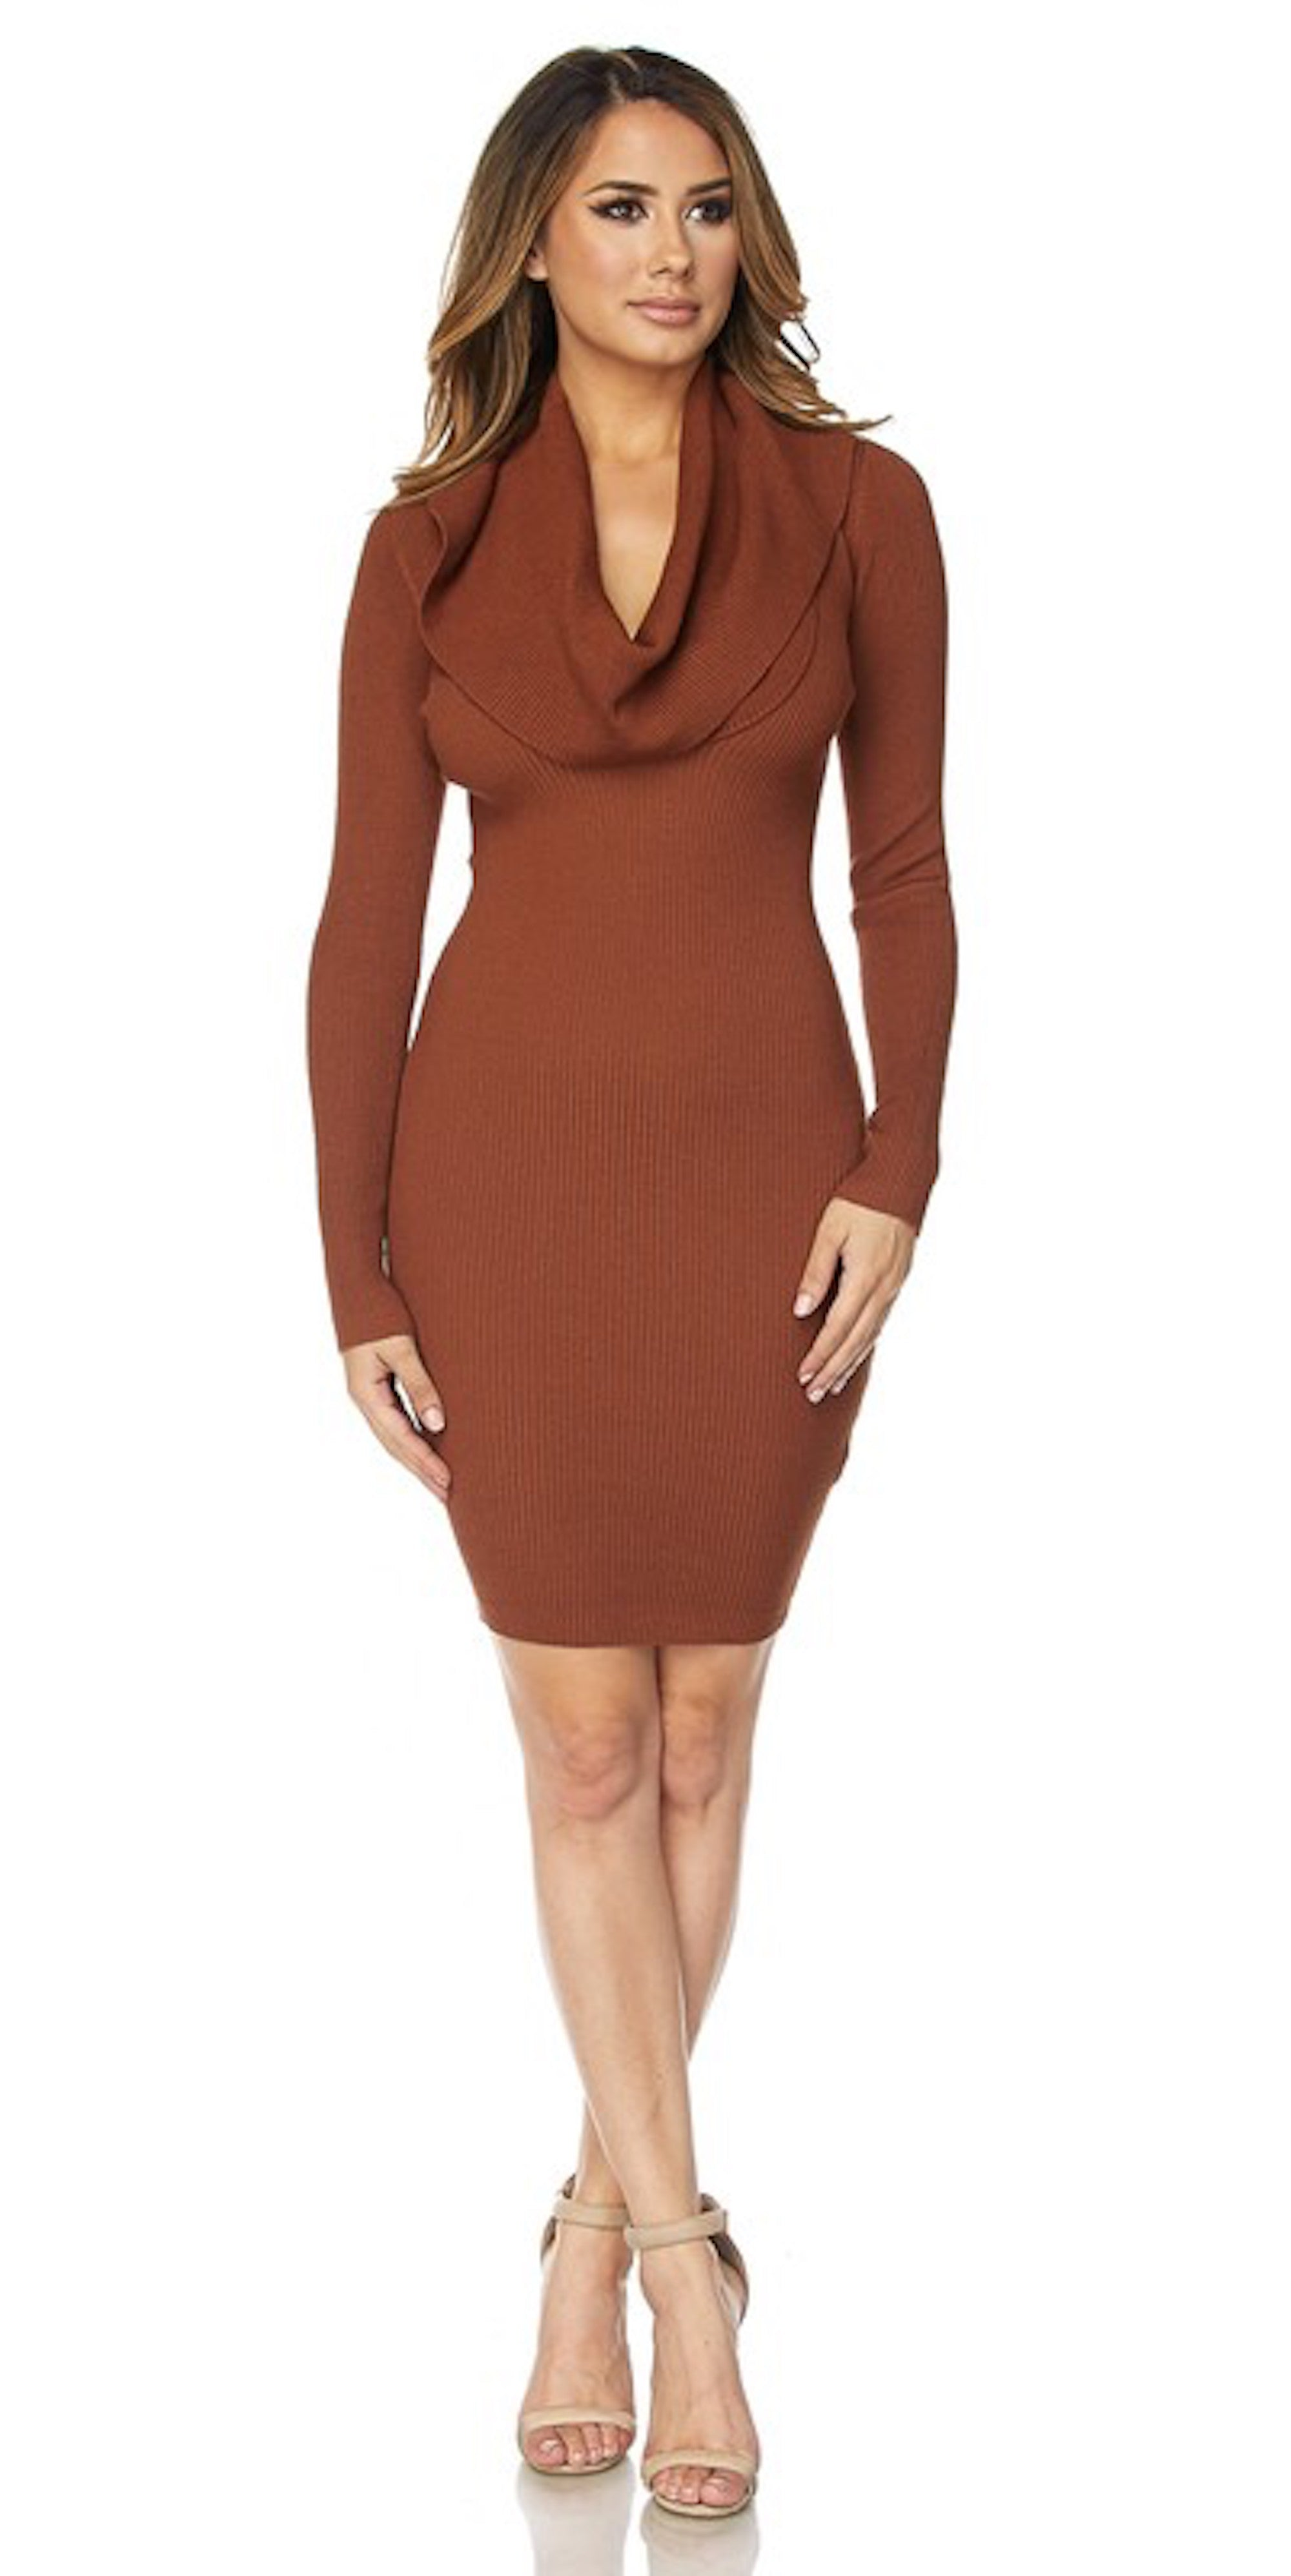 rust brown cowl neck long sleeve dress fall midi knit fashion trend style clothes clothing